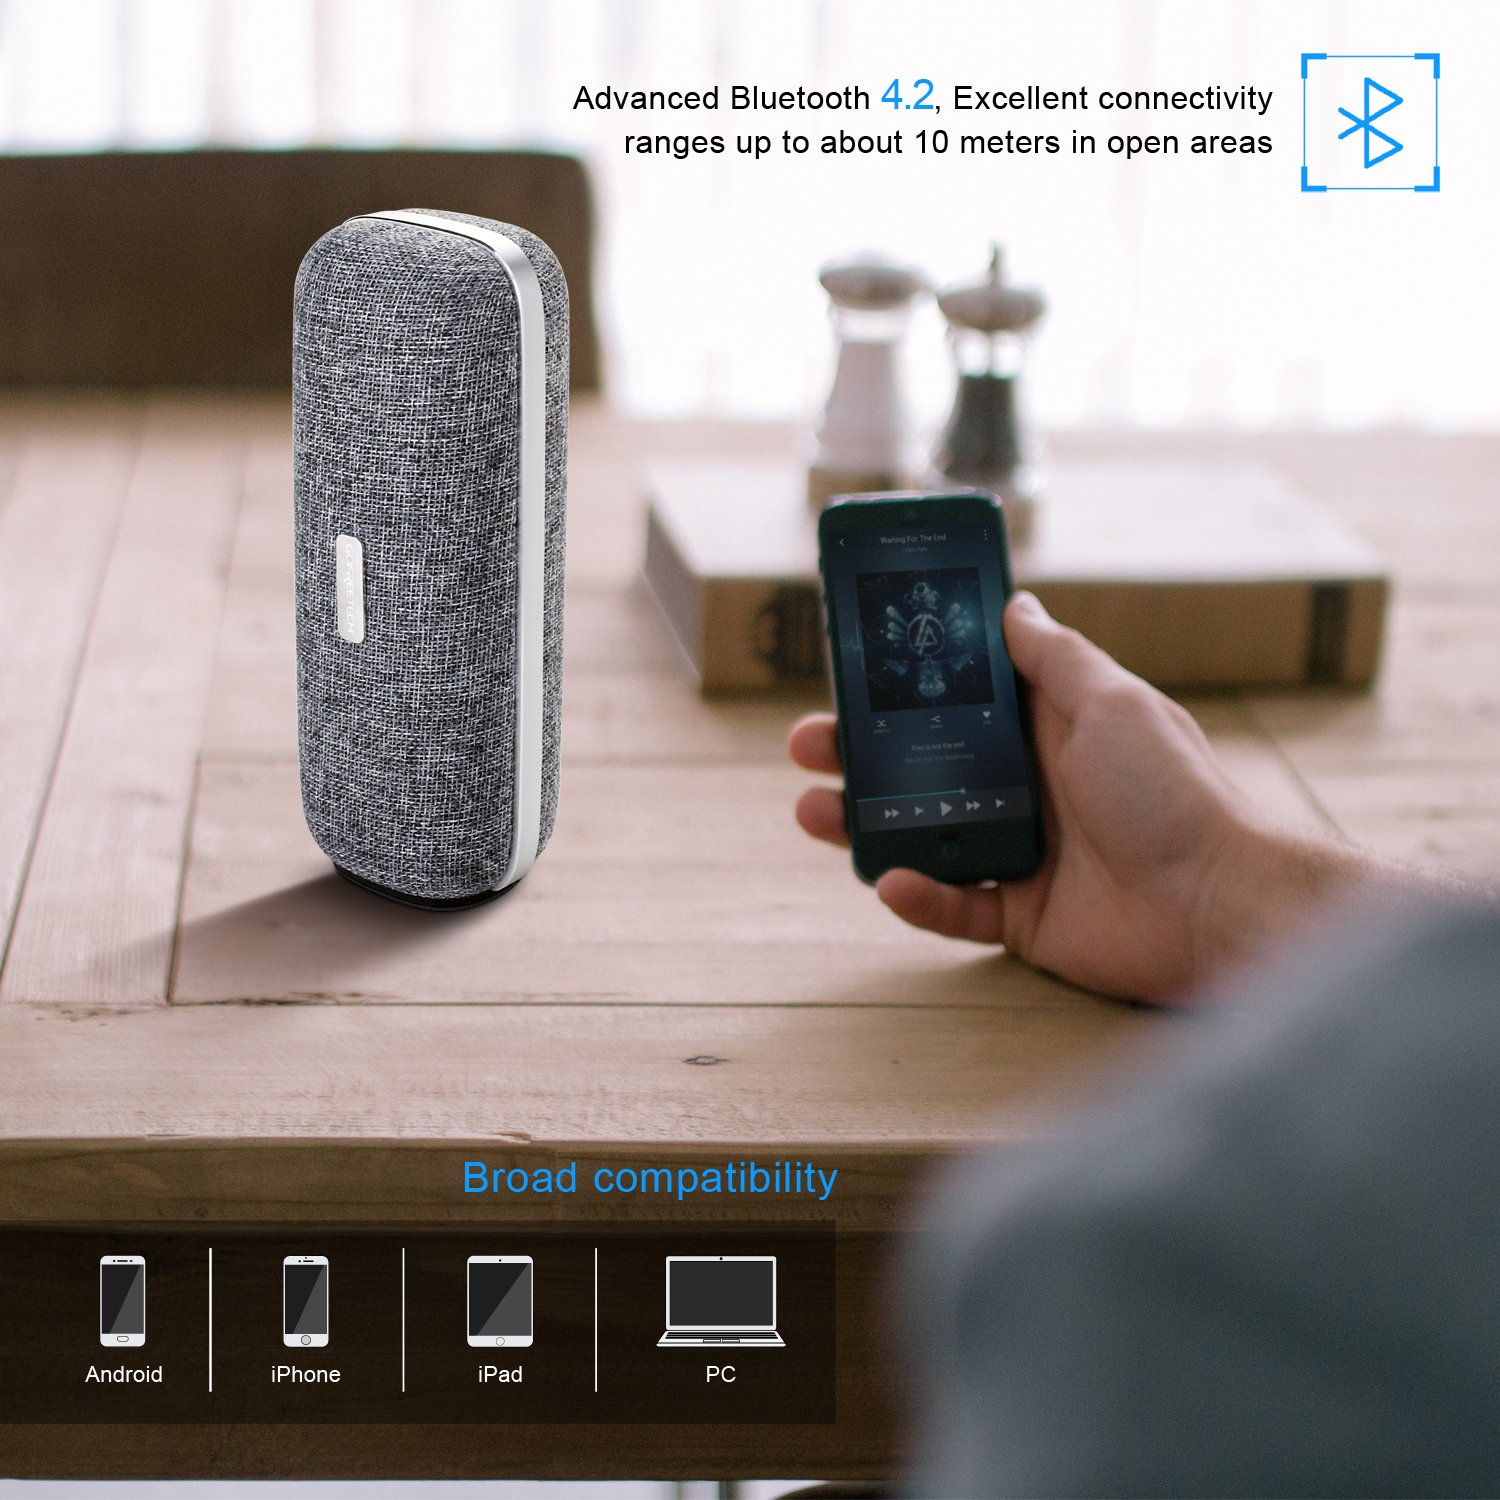 Wireless Bluetooth Speaker, Portable Classic Elegant Stereo Speakers with HD Sound Audio and Enhanced Bass, Bluetooth 4.2/AUX line/Dual Driver Speakers for Home, Beach, Travel, Party - Gofreetech by GOFREETECH (Image #3)